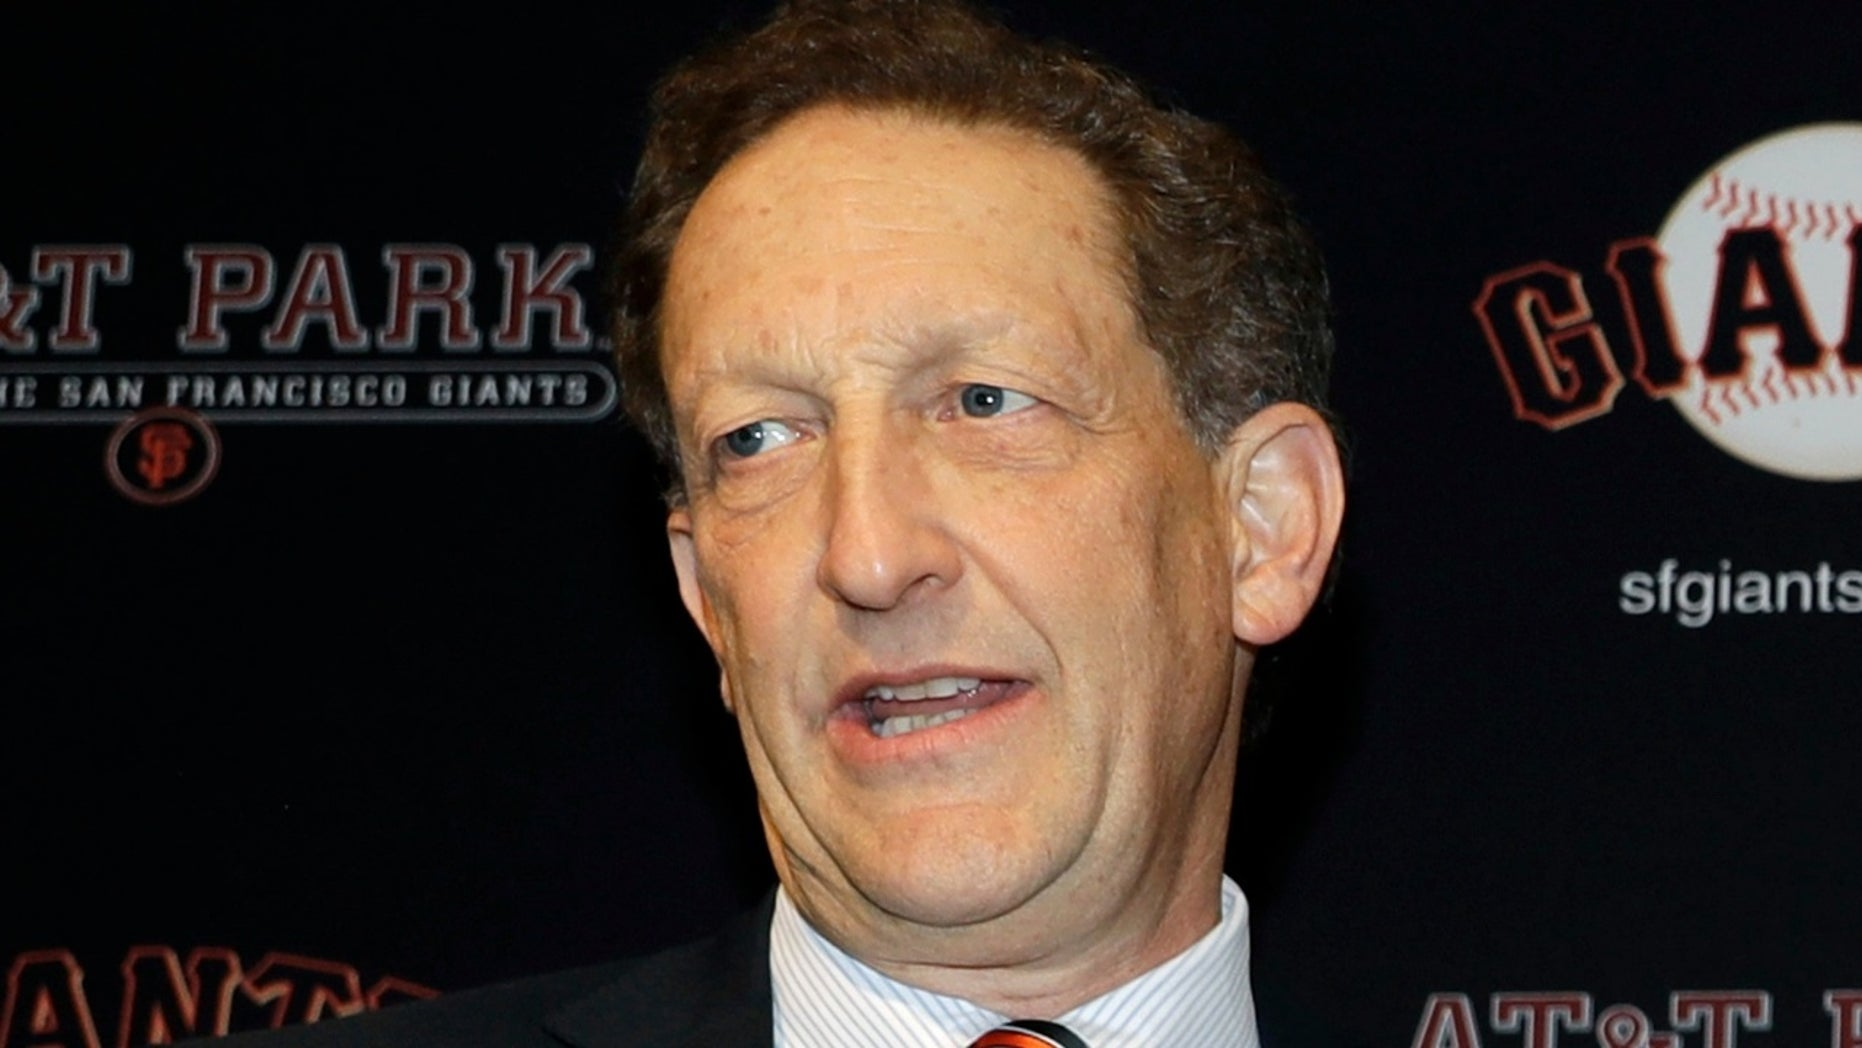 Major League Baseball has suspended San Francisco Giants President and CEO Larry Baer without pay until July 1 in response to a video released earlier this month showing him in a physical altercation with his wife.